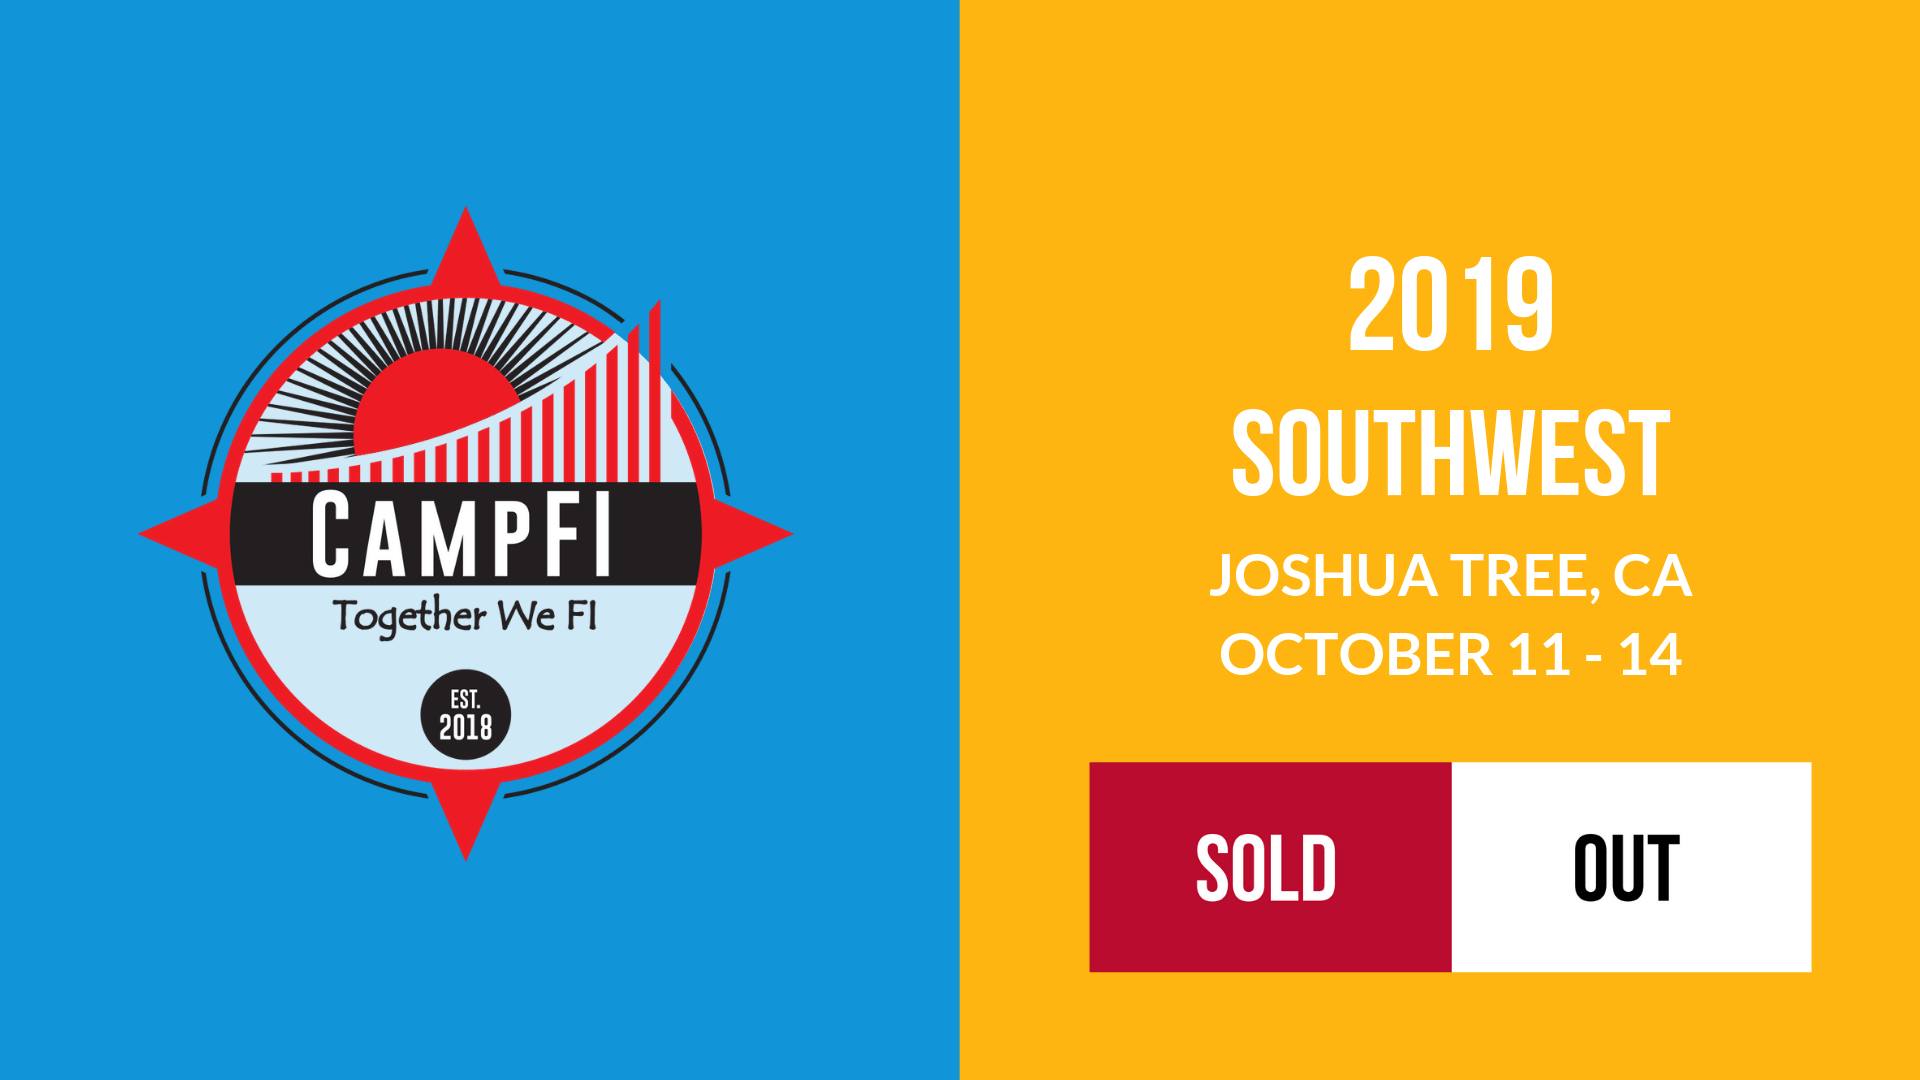 CampFI Southwest 2019 Sold Out